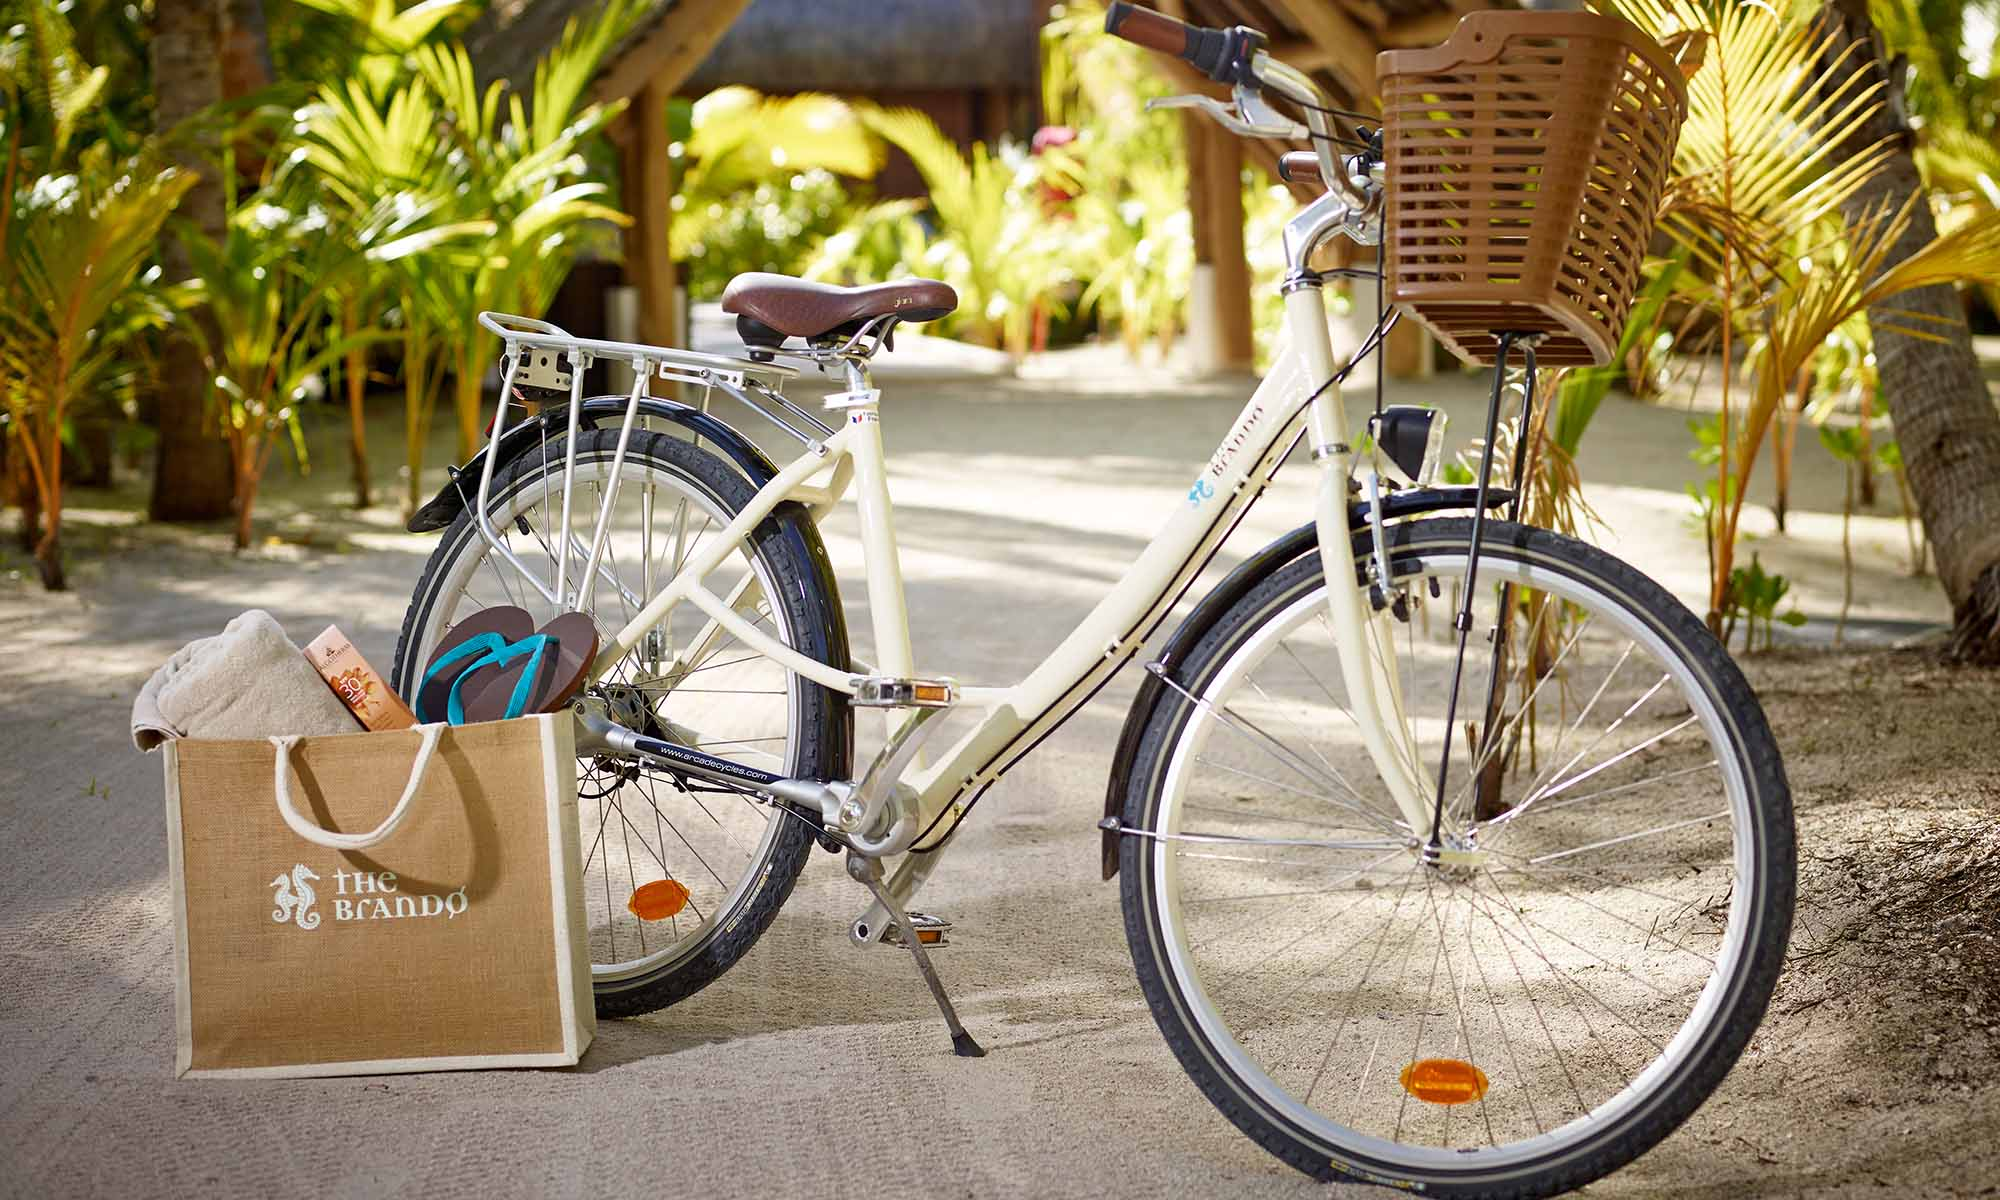 The Brando, Bicycles for Guests